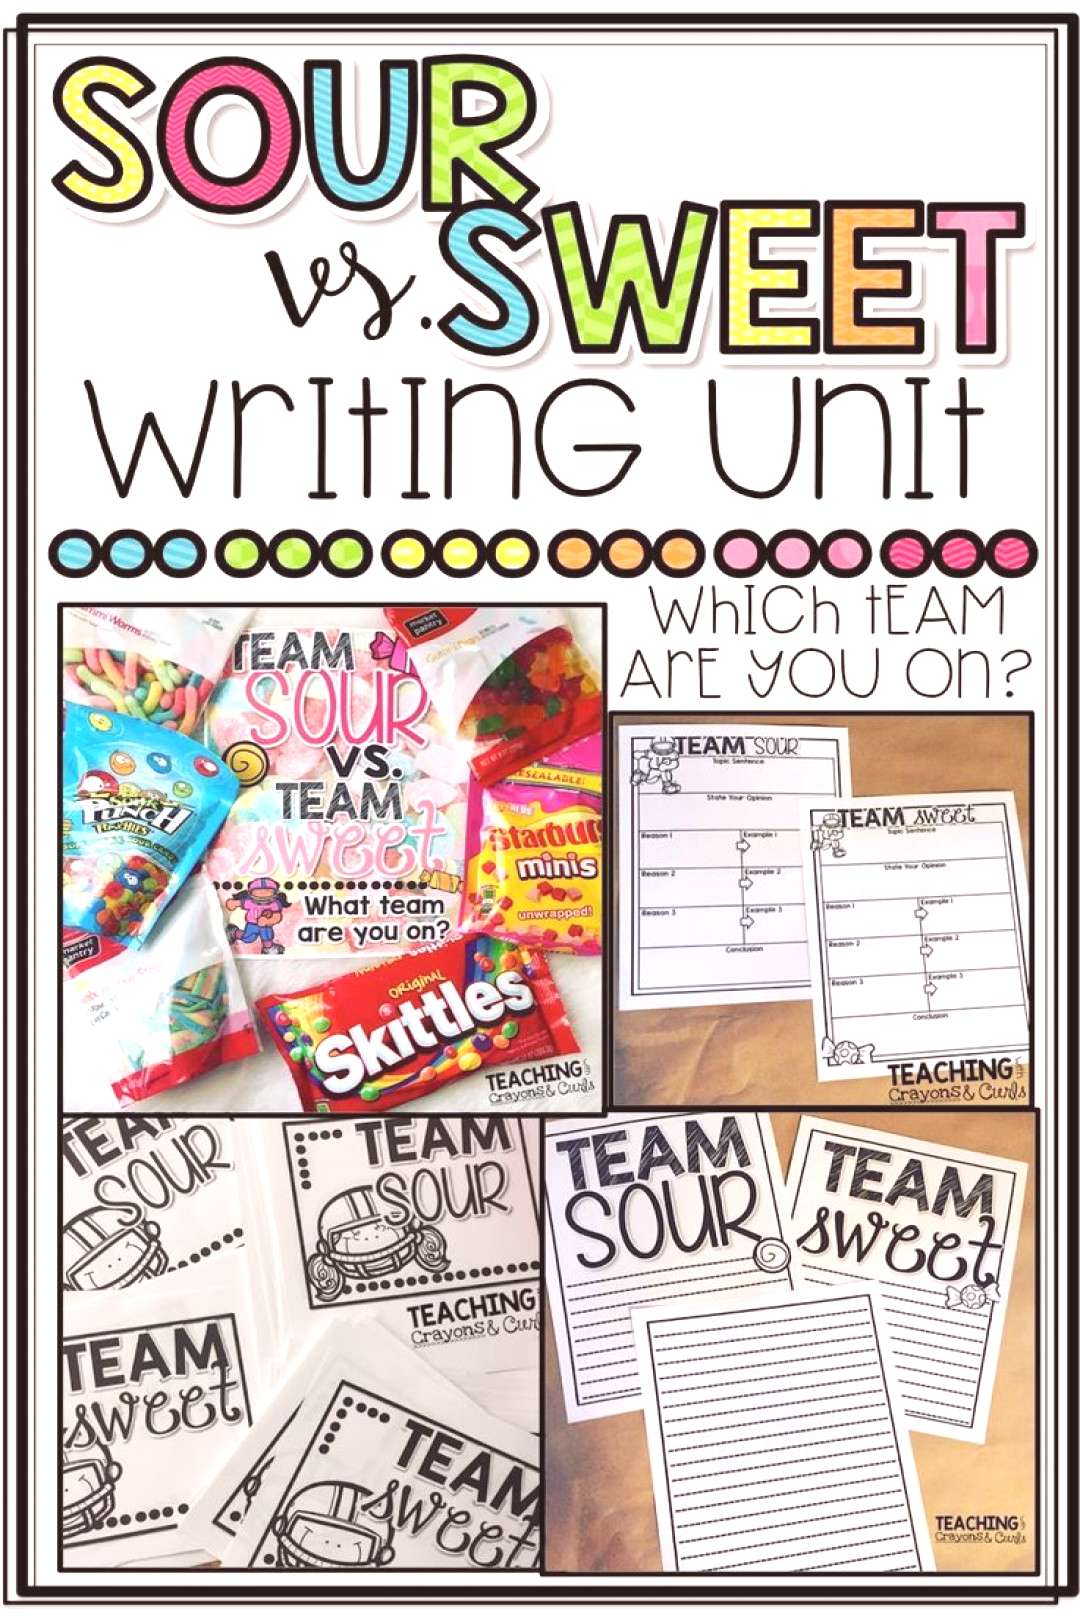 Team Sour VS. Team Sweet! An Opinion Writing Activity! Teaching With Crayons and Curls Team Sour V